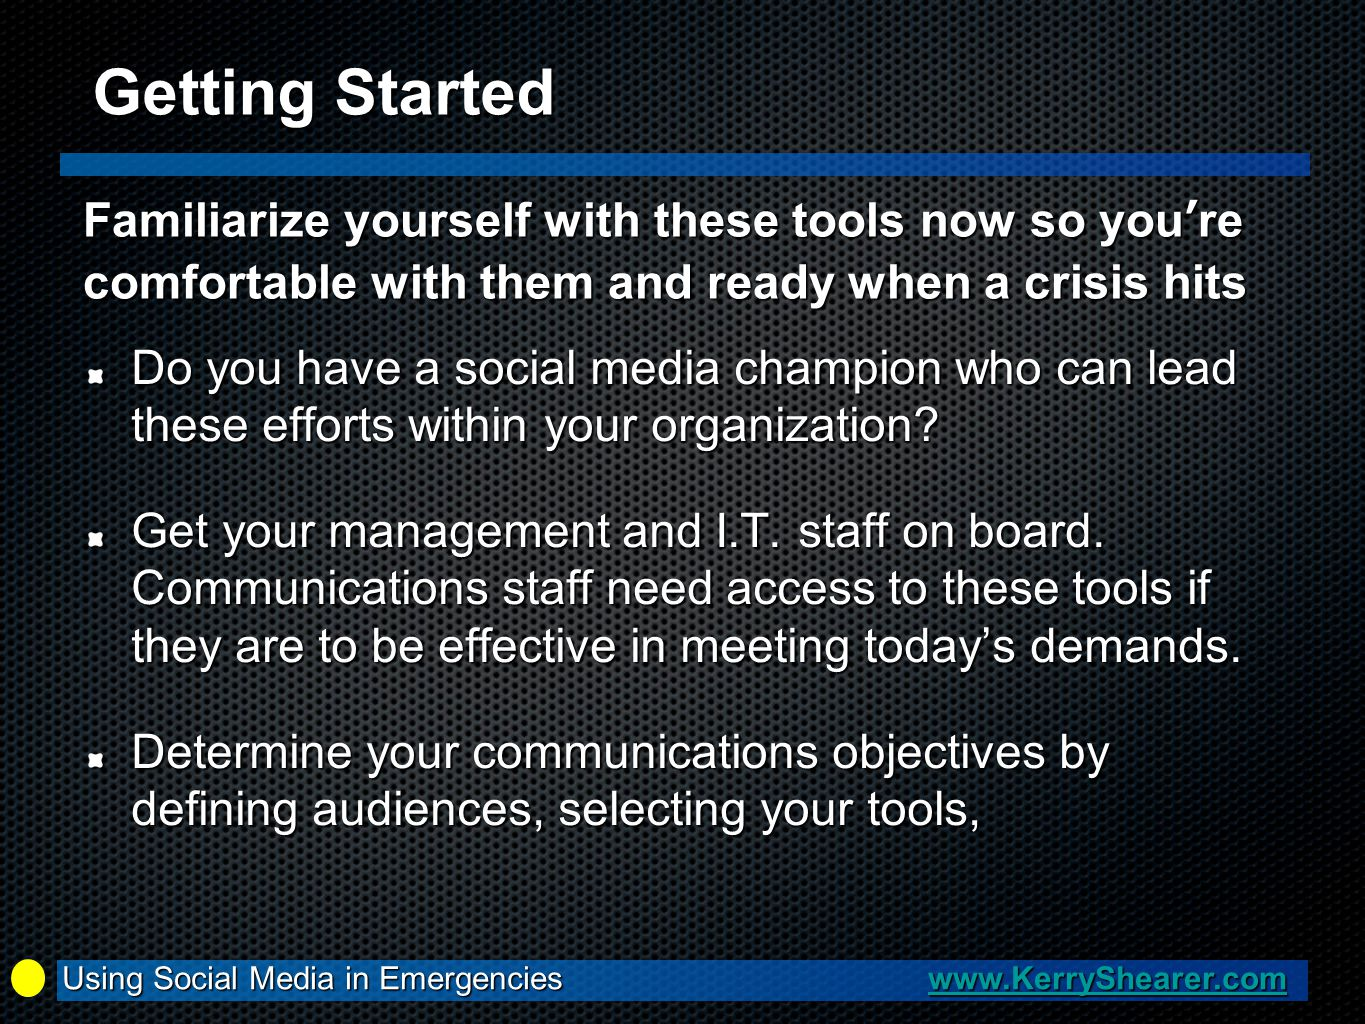 Do you have a social media champion who can lead these efforts within your organization? Get your management and I.T. staff on board. Communications s